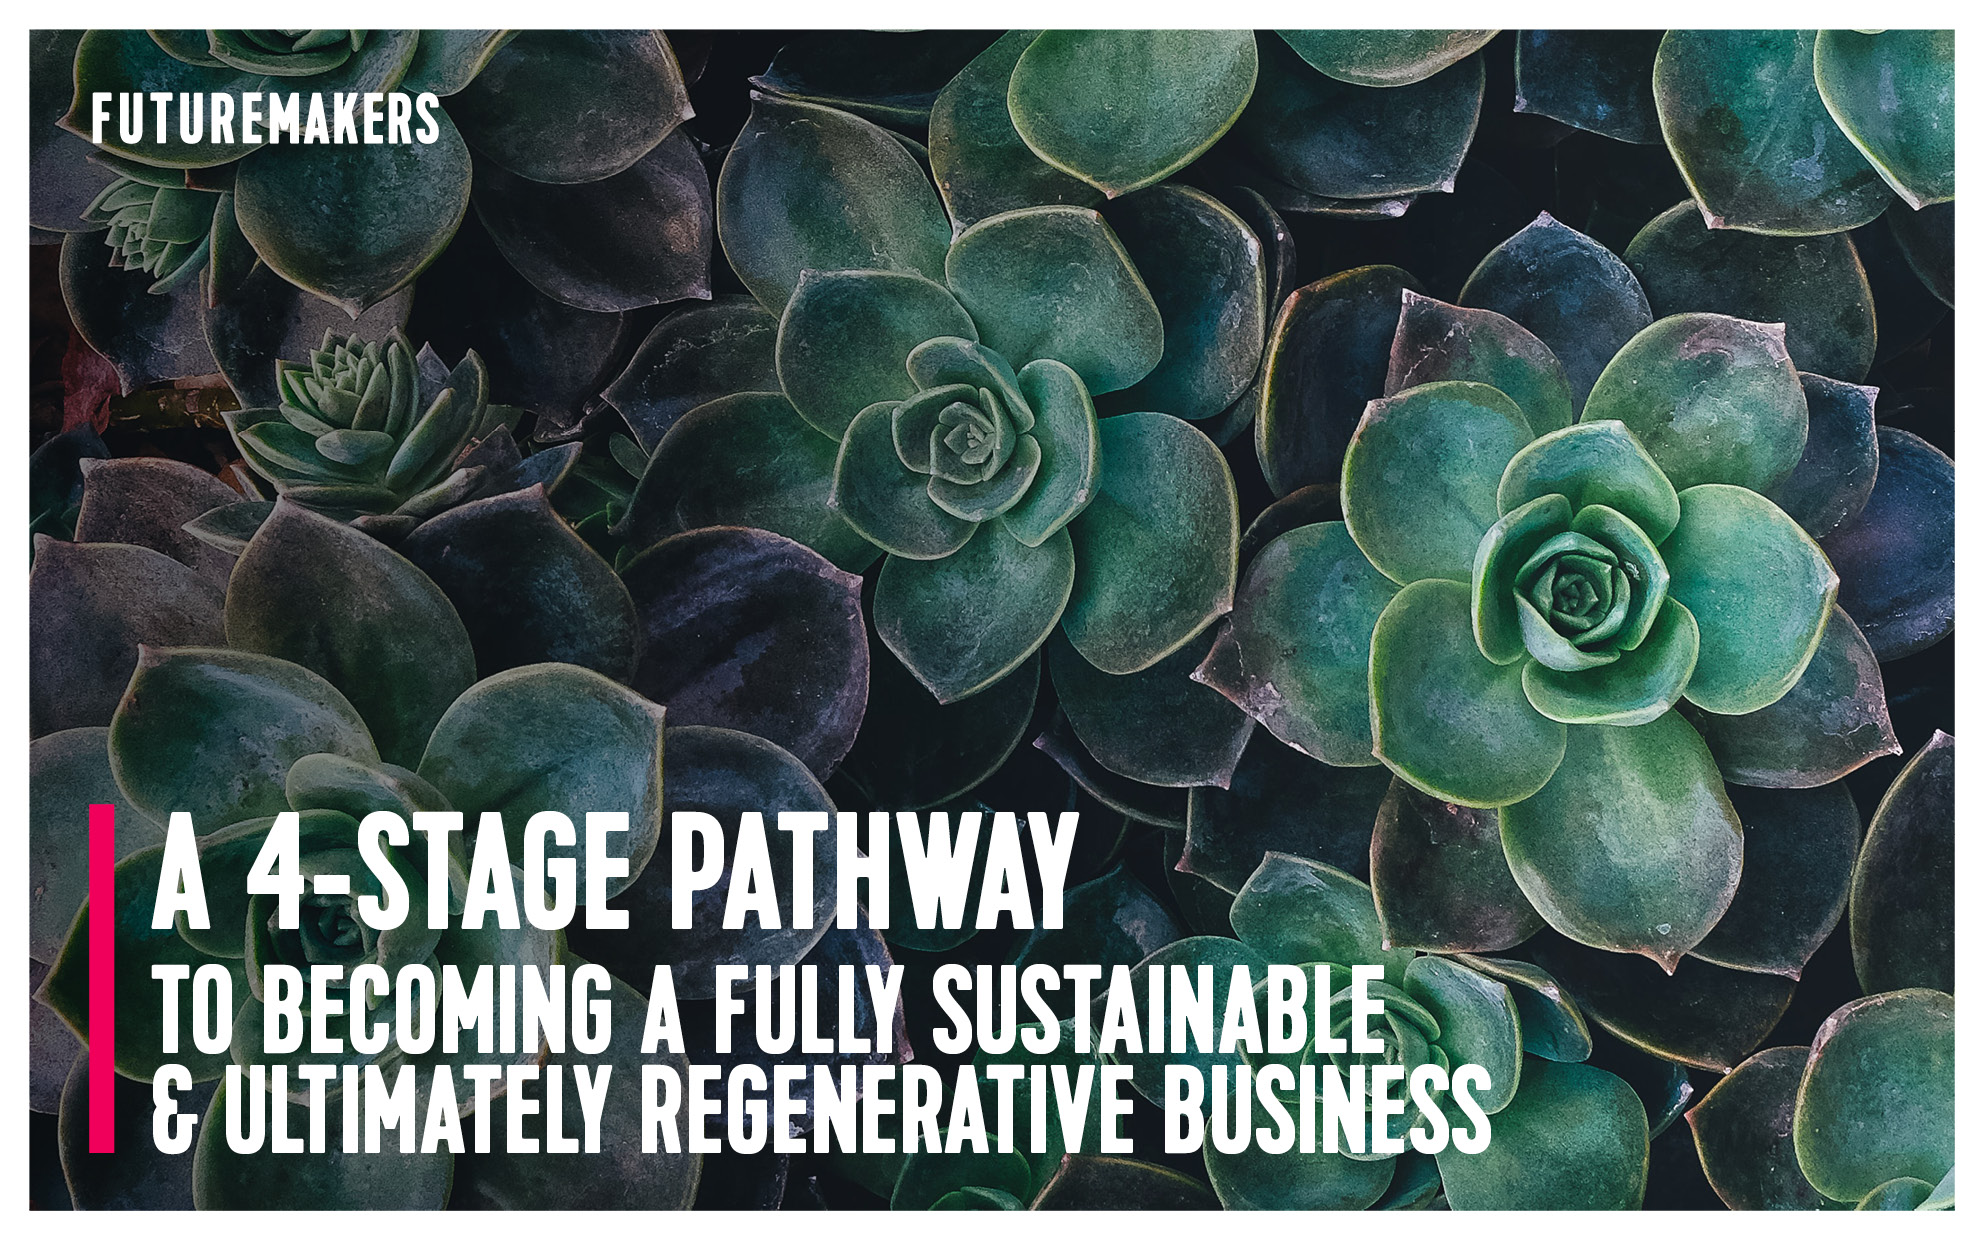 futuremakers-a-4-stage-pathway